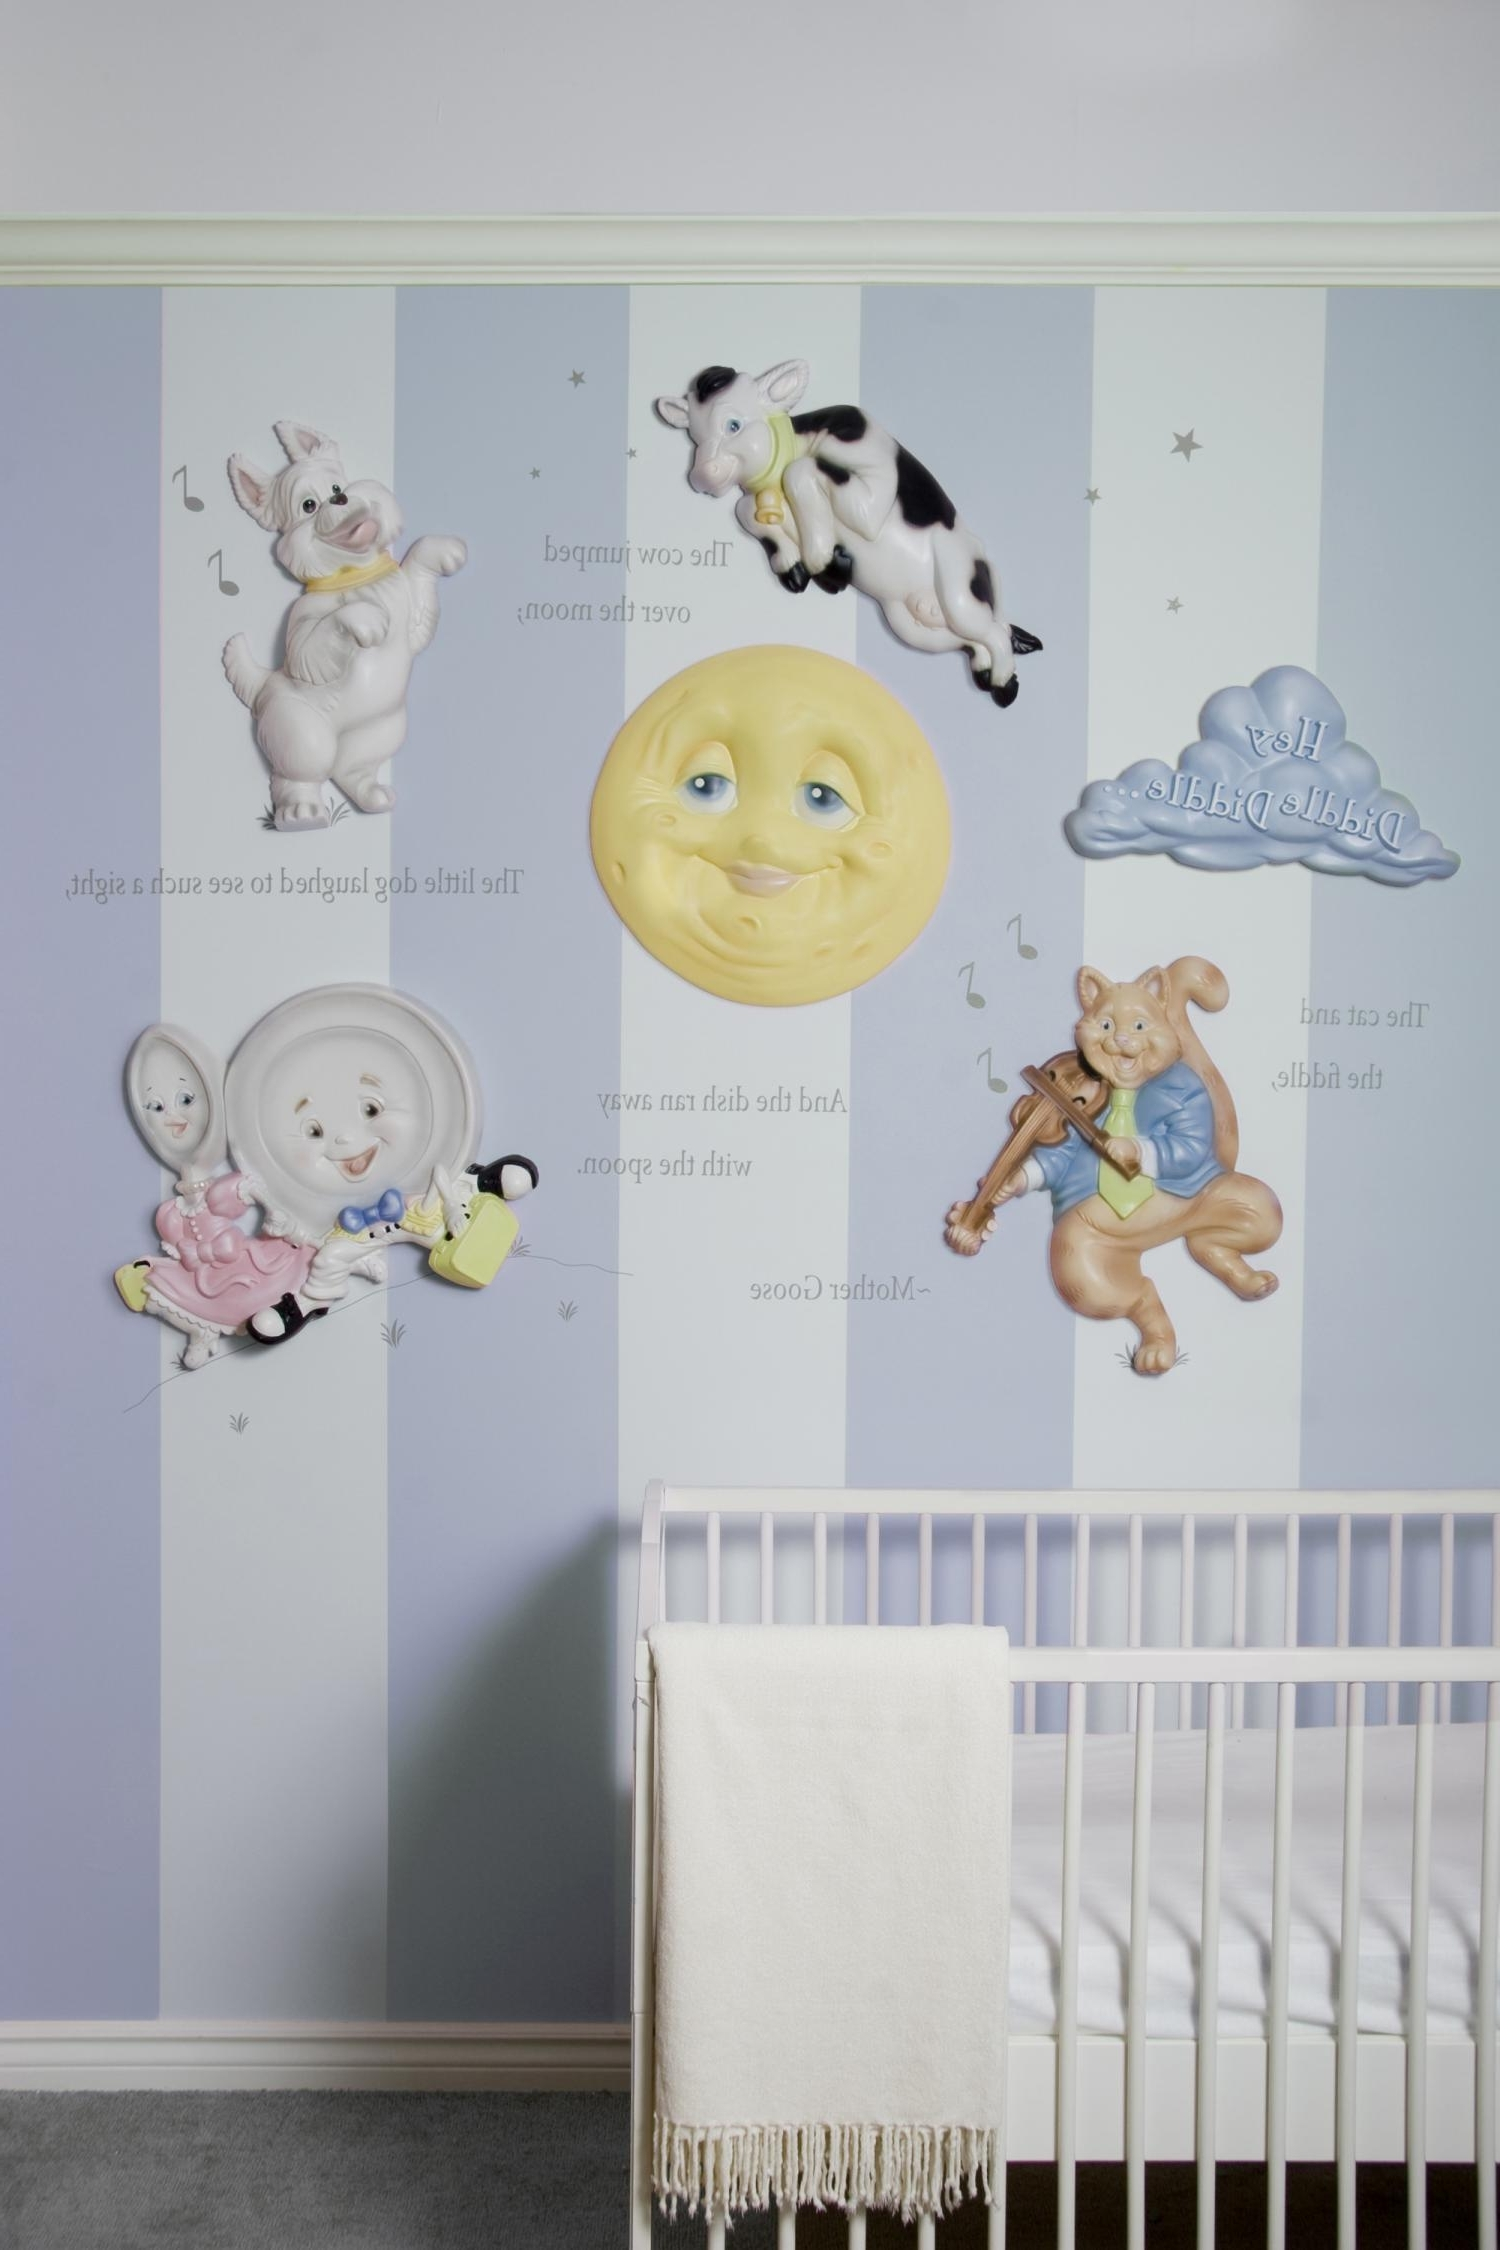 Baby Nursery 3D Wall Art With Regard To 2017 Mother Goose Nursery Rhymes 3D Wall Art Decorbeetling Design (View 7 of 15)